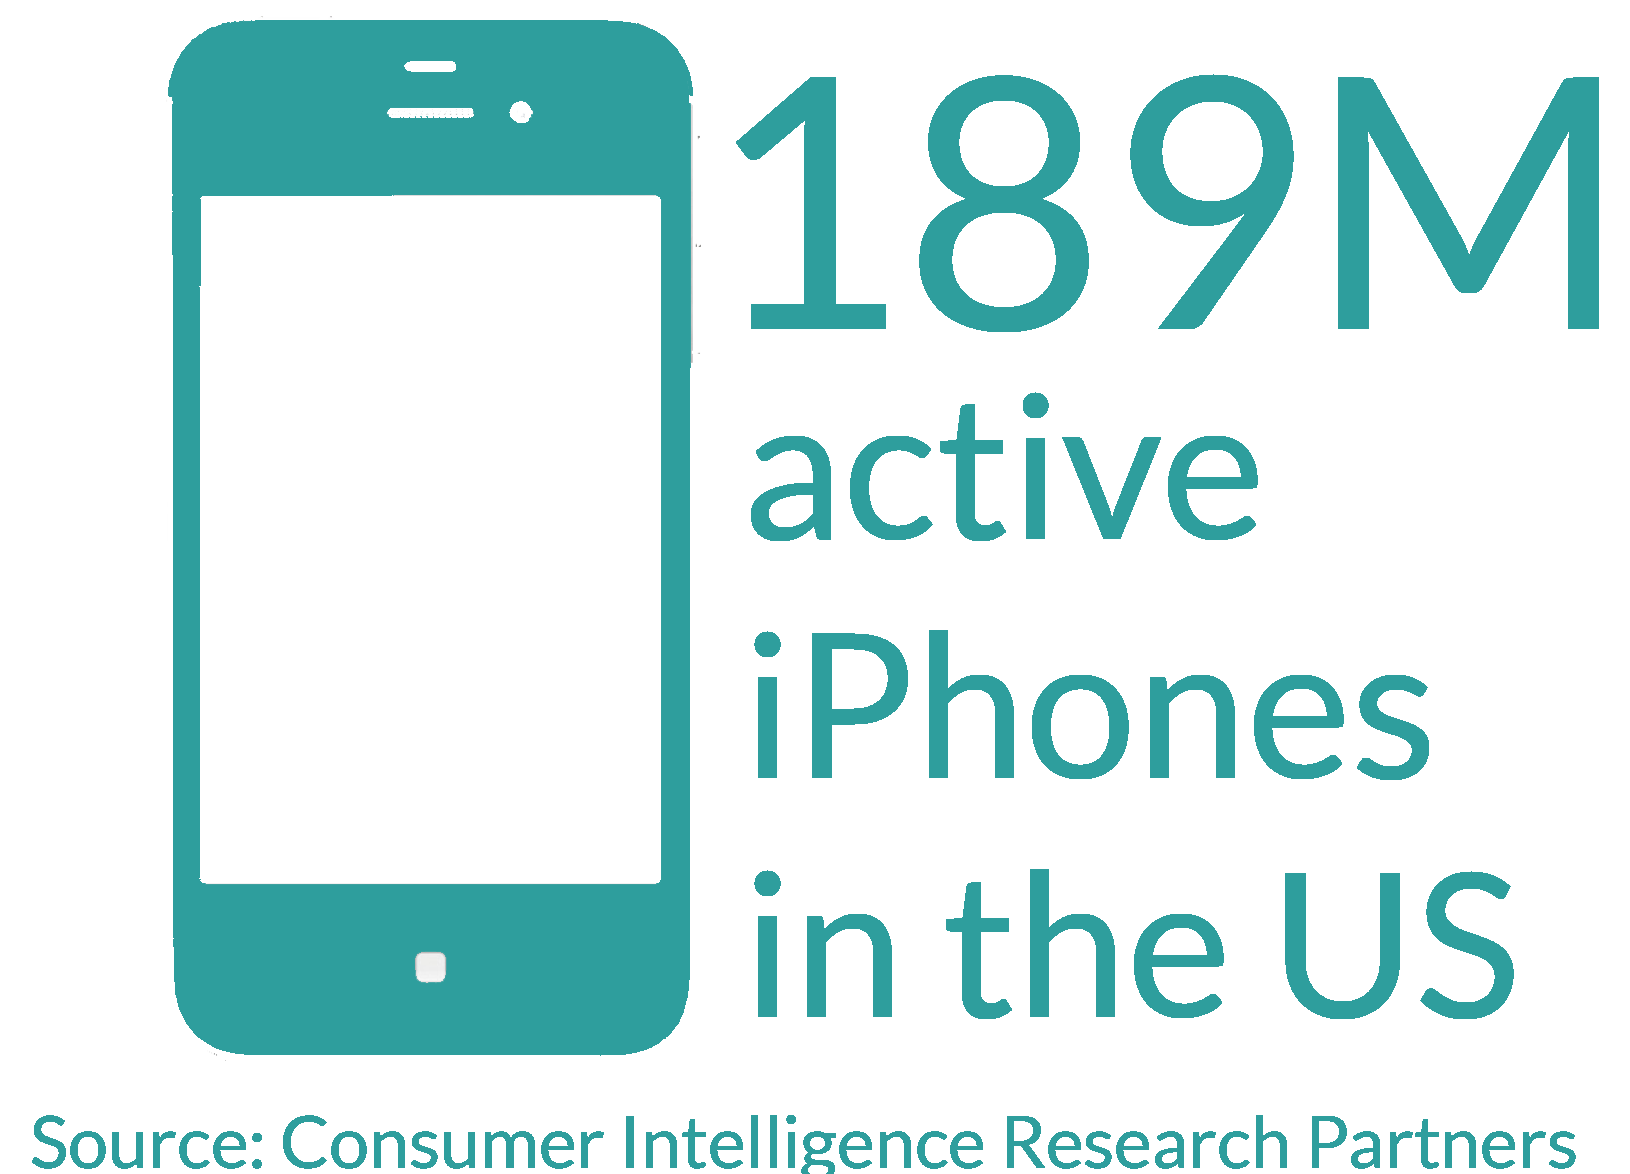 189M active iPhones in the US